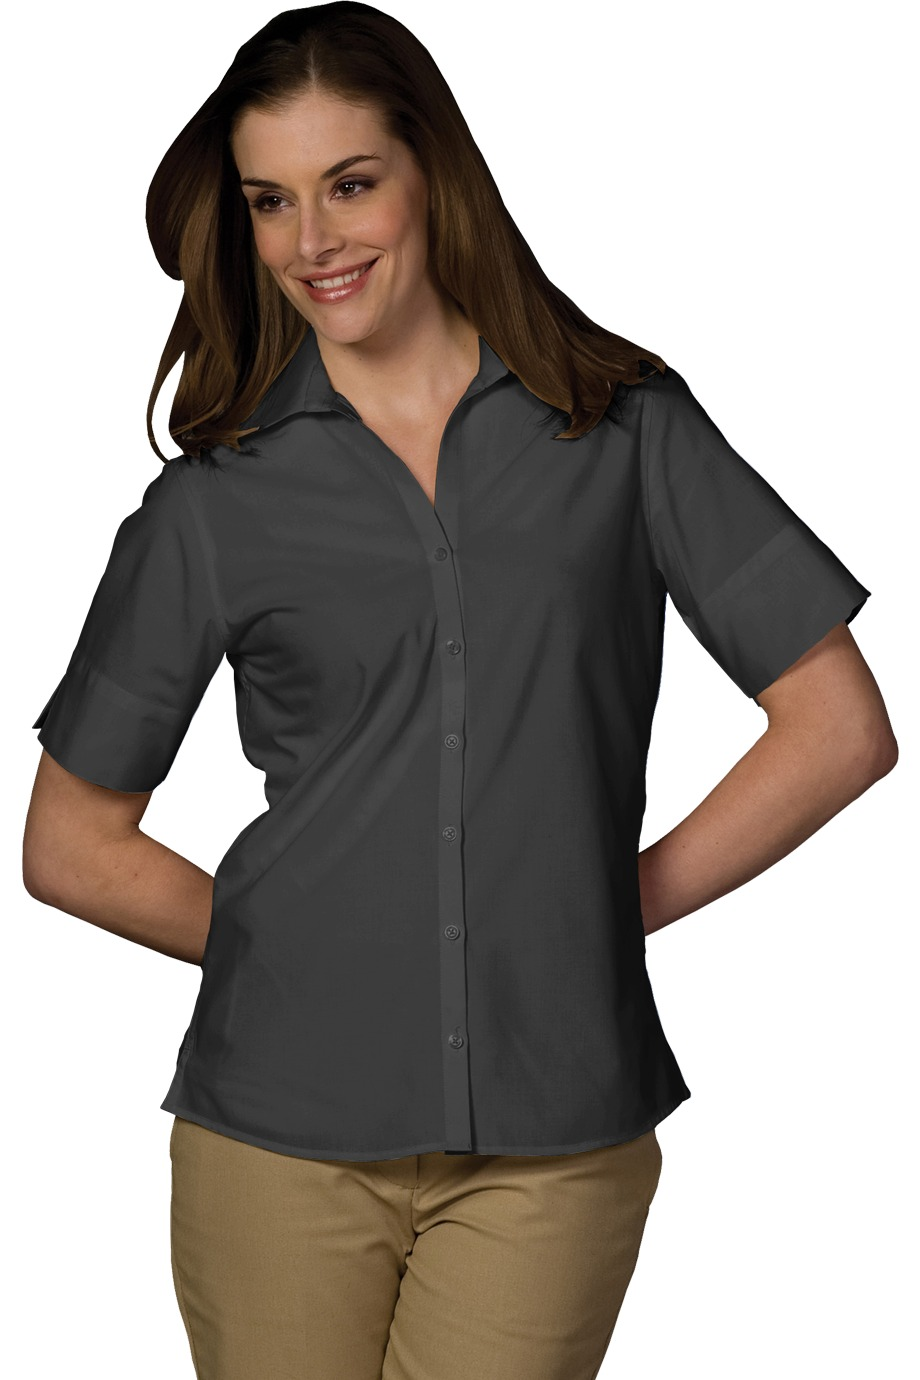 LHE5245-FKEY- Ladies V-Neck Button Up Poplin Short Sleeve Shirt with Notch Cuff. Sizes XXSmall-3XL